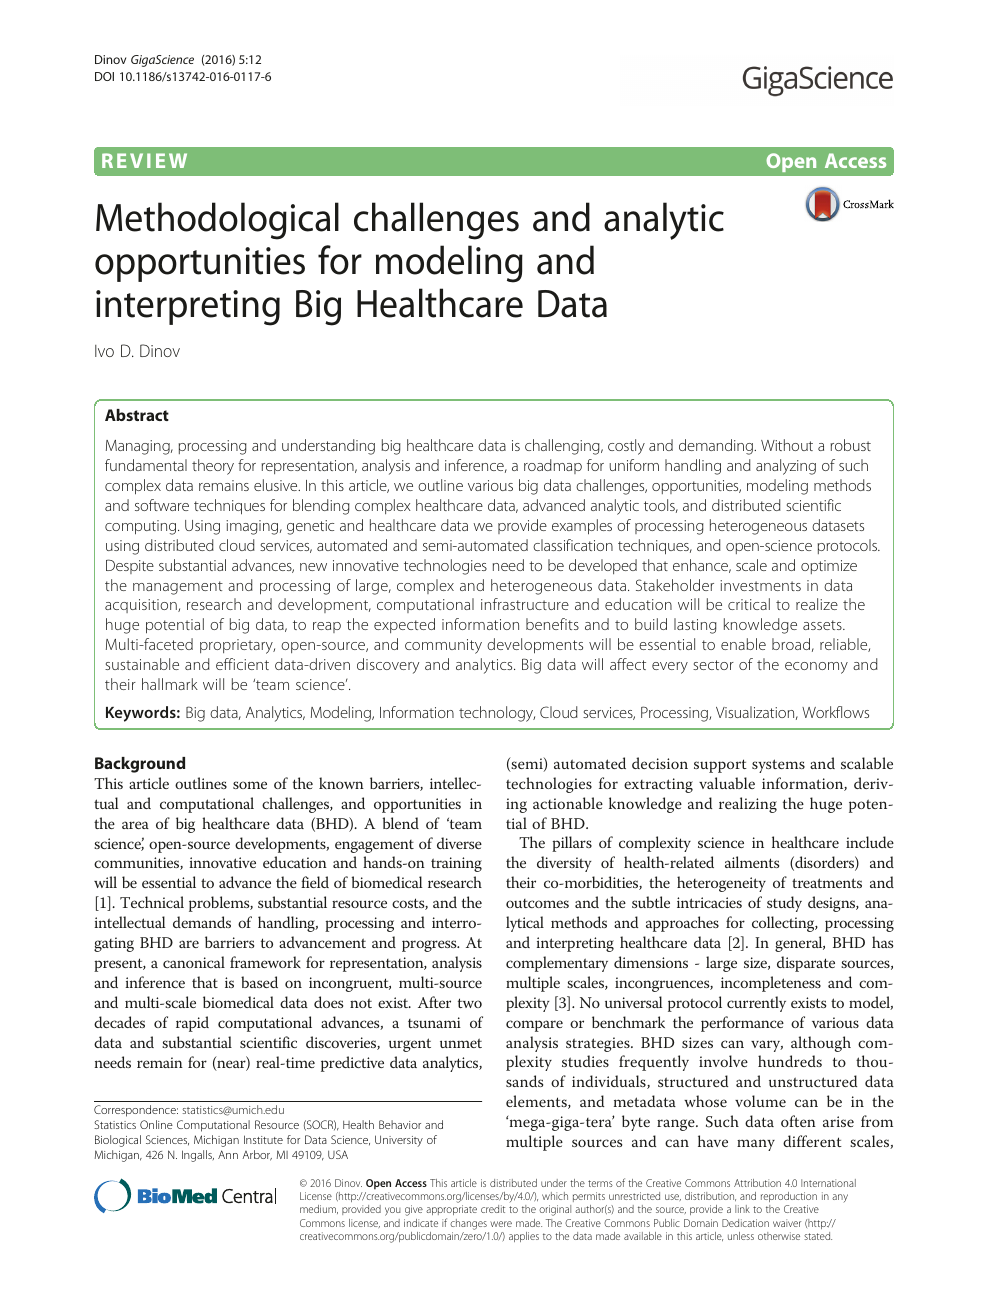 Methodological challenges and analytic opportunities for